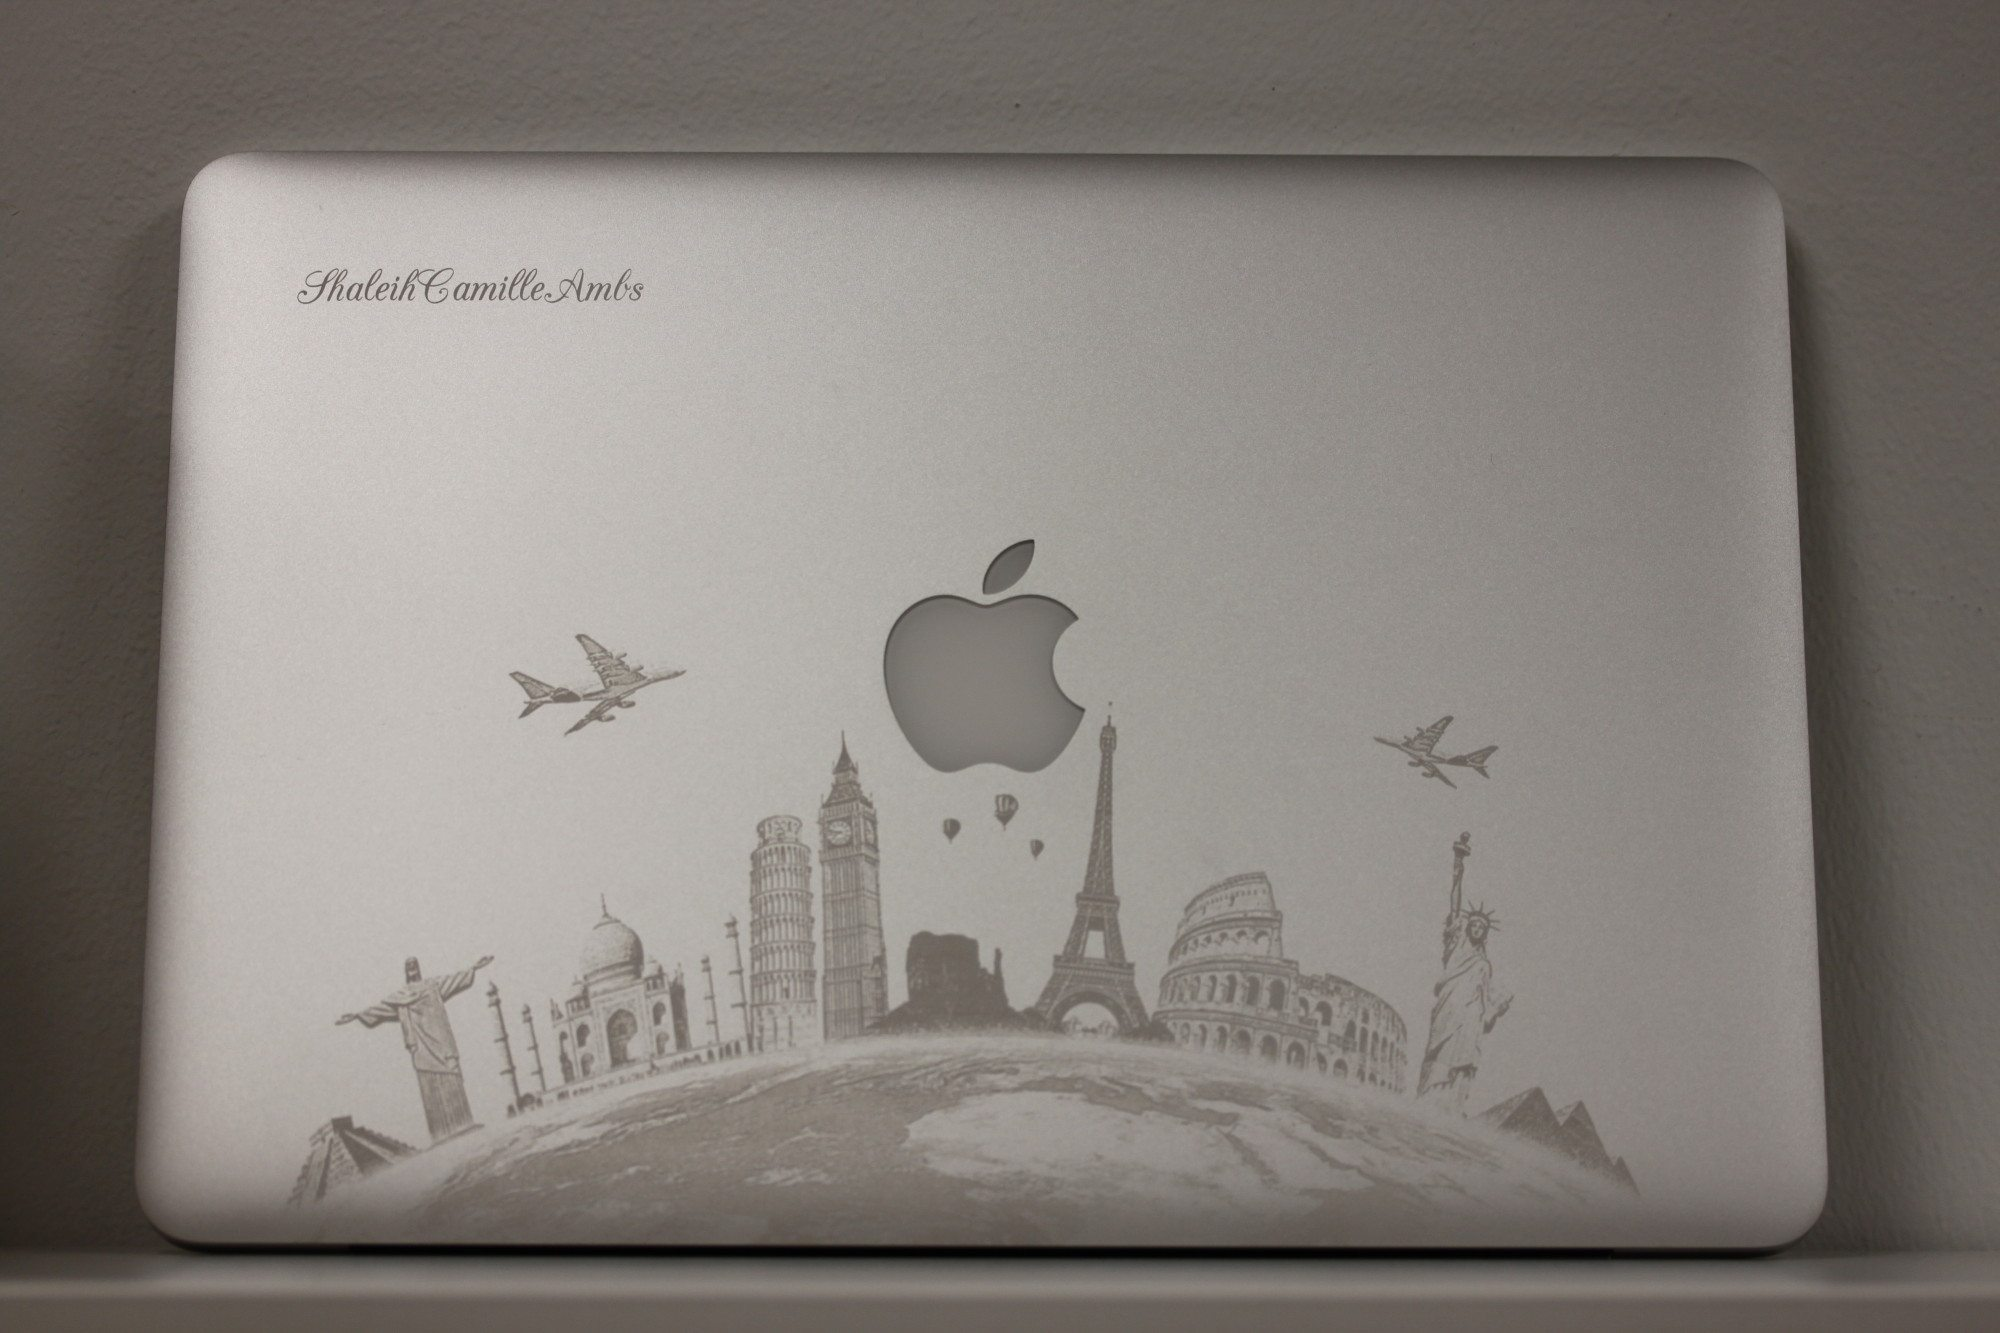 Drawn macbook engraved In Flash MacBook World A